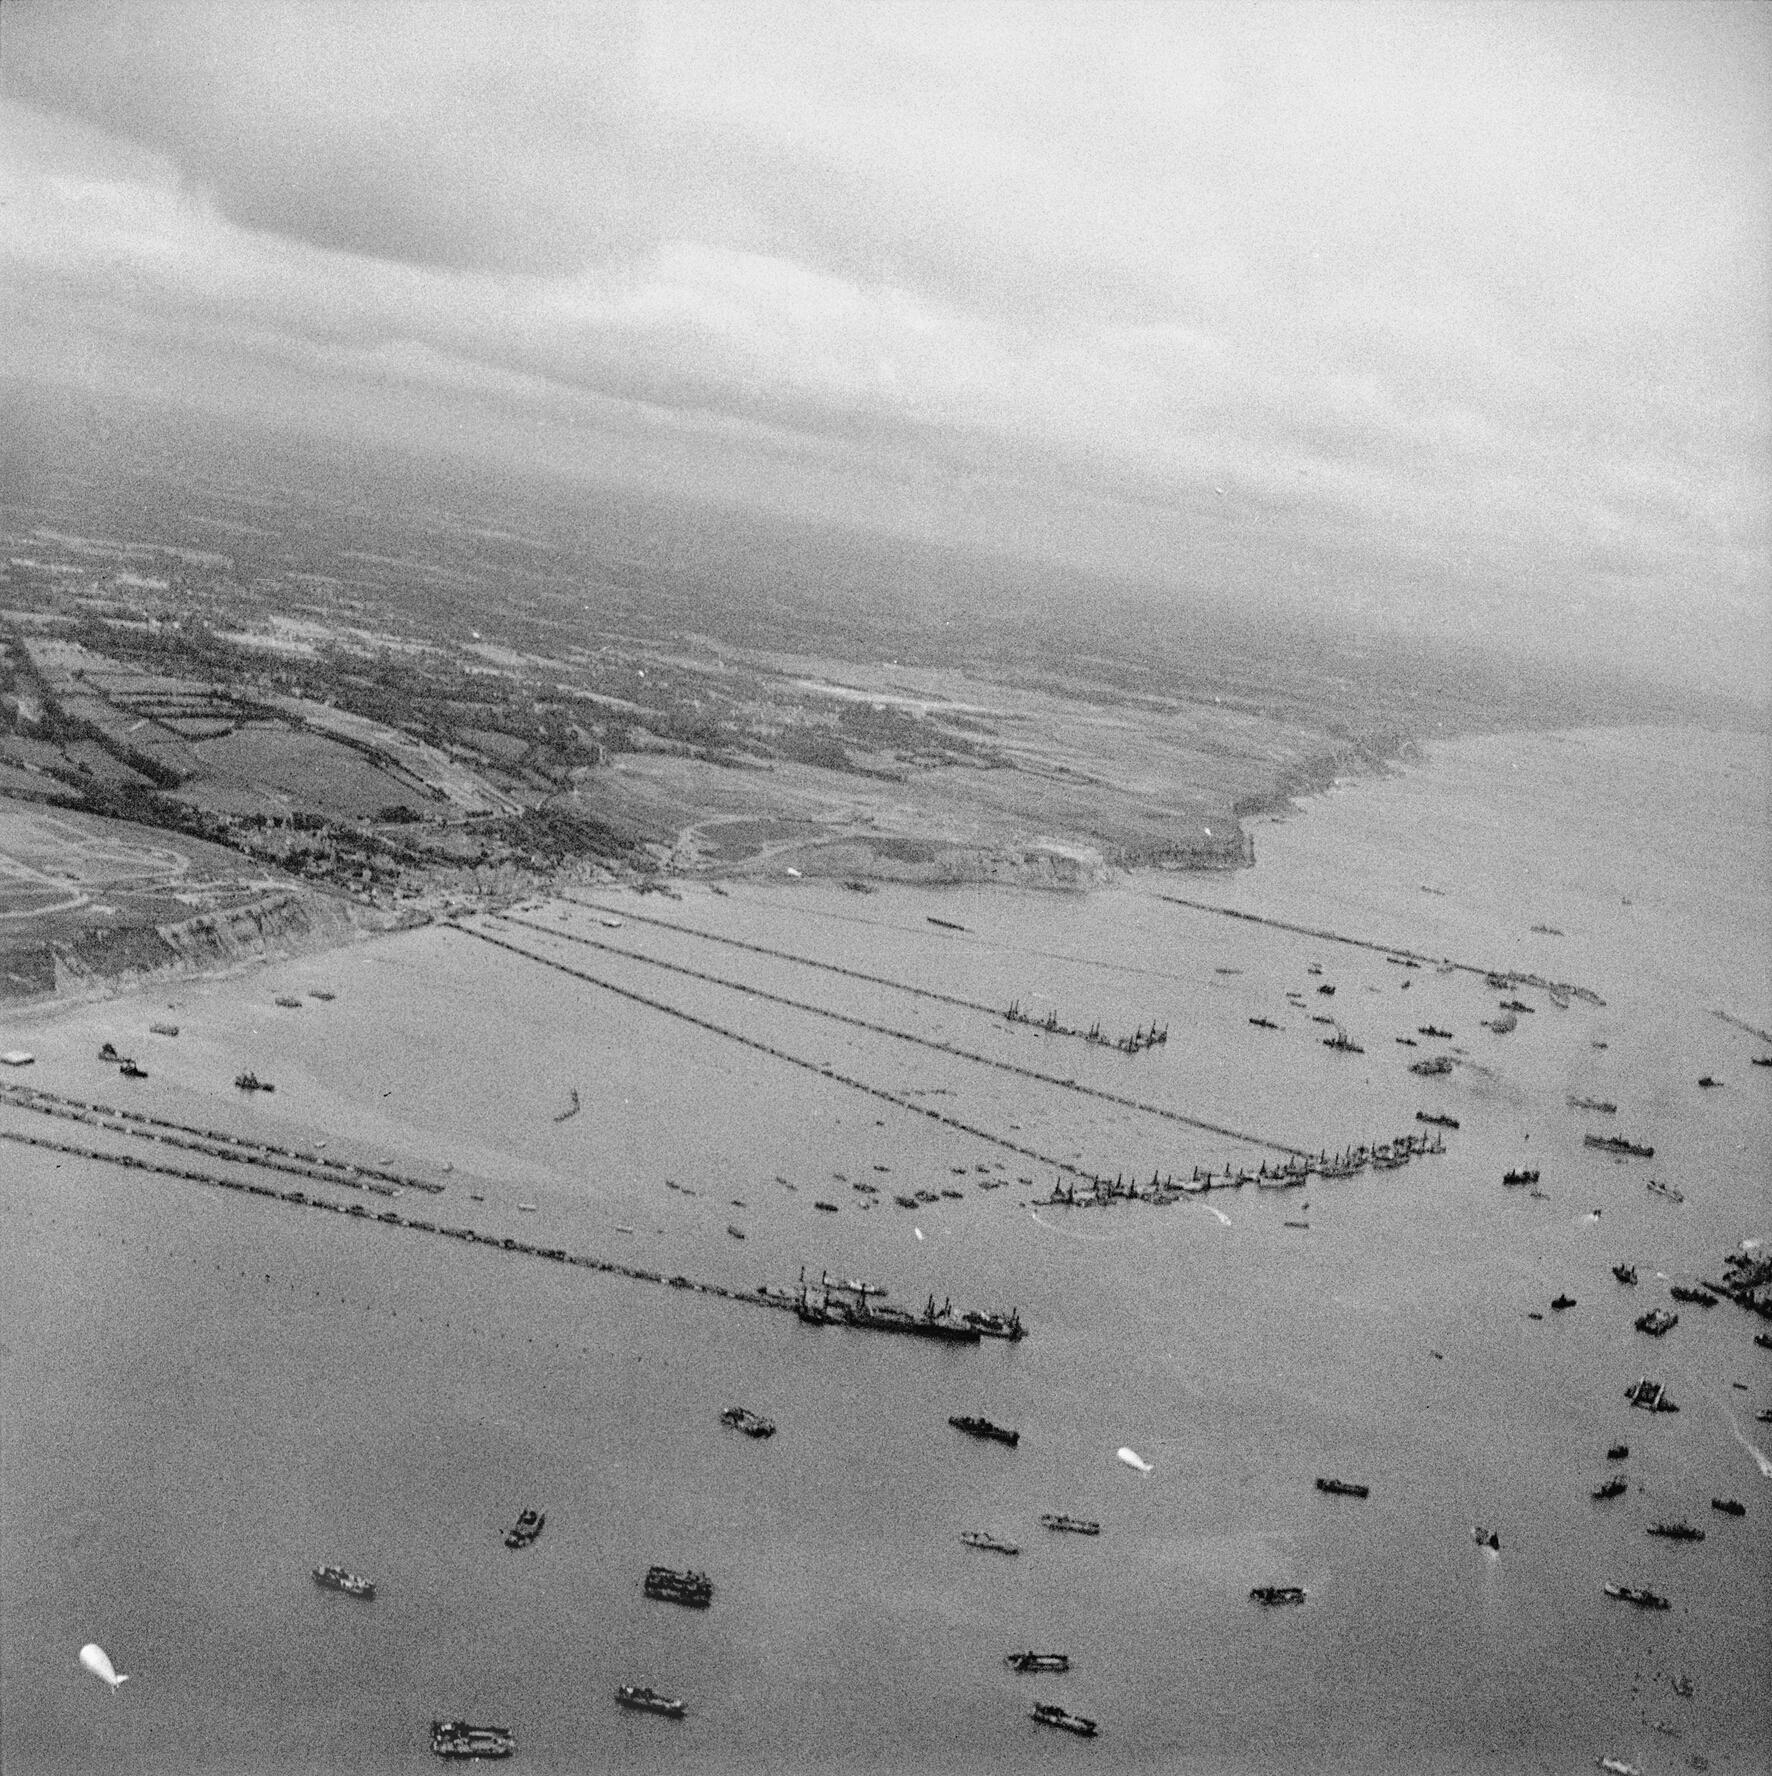 Mulberry Harbours off Arromanches in Normandy